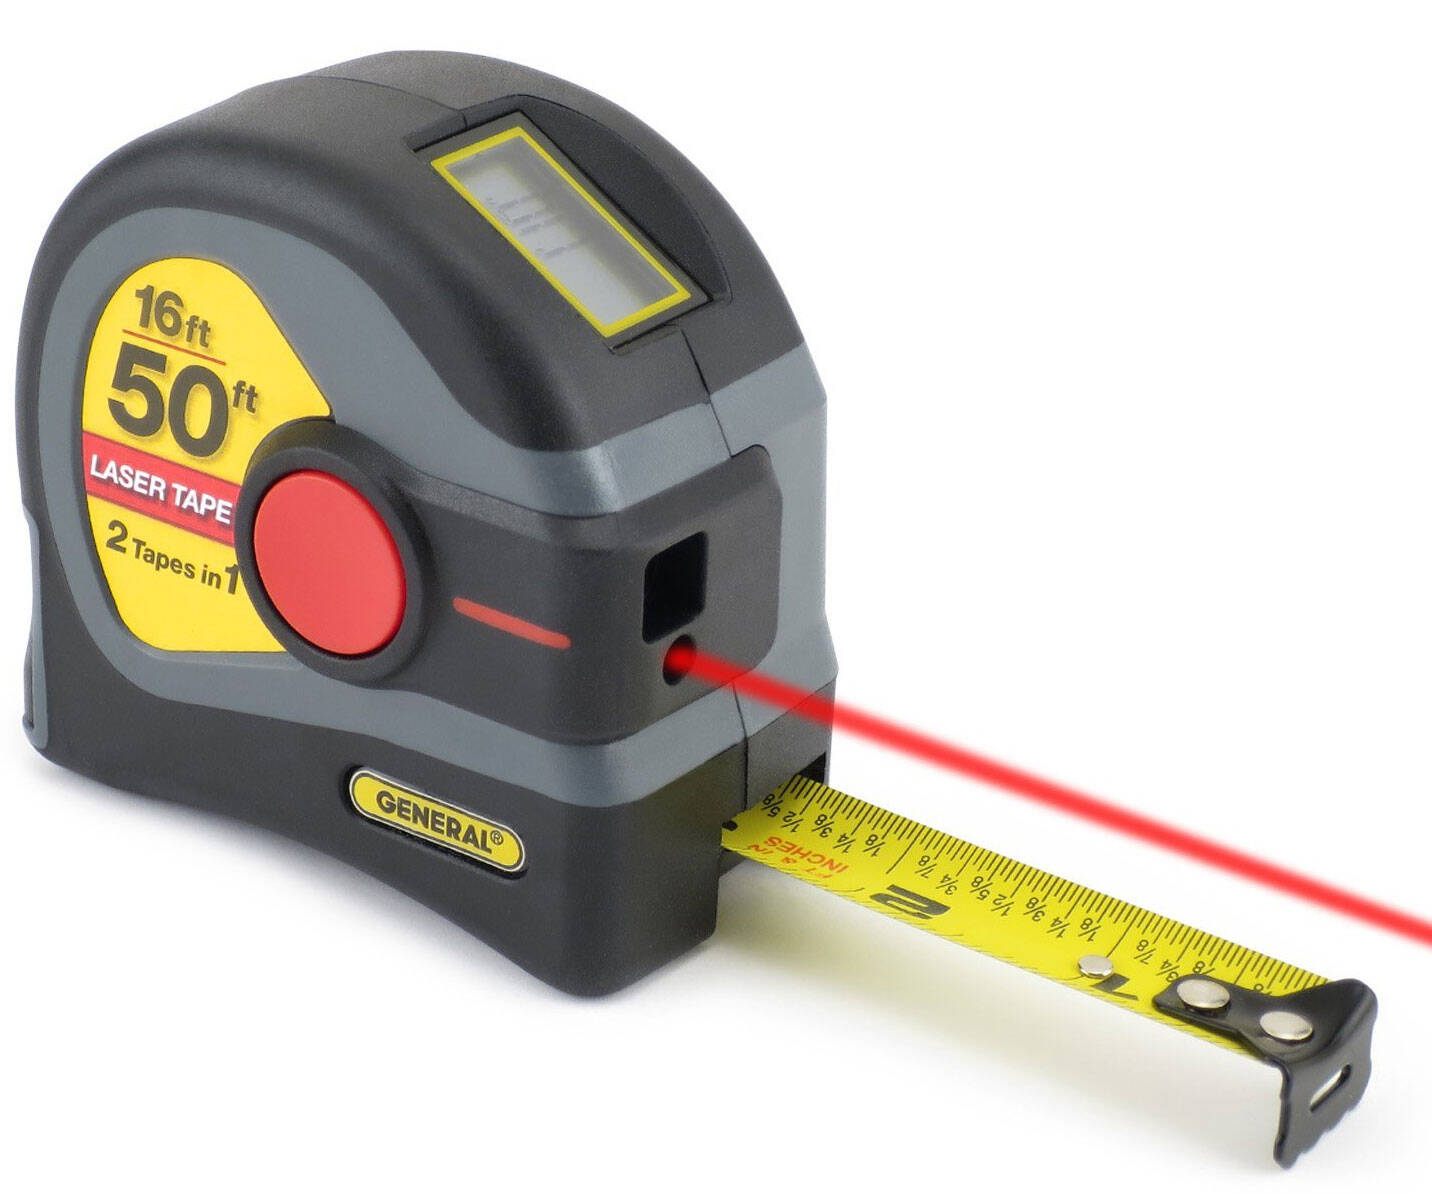 2-In-1 Laser Tape Measure - http://coolthings.us